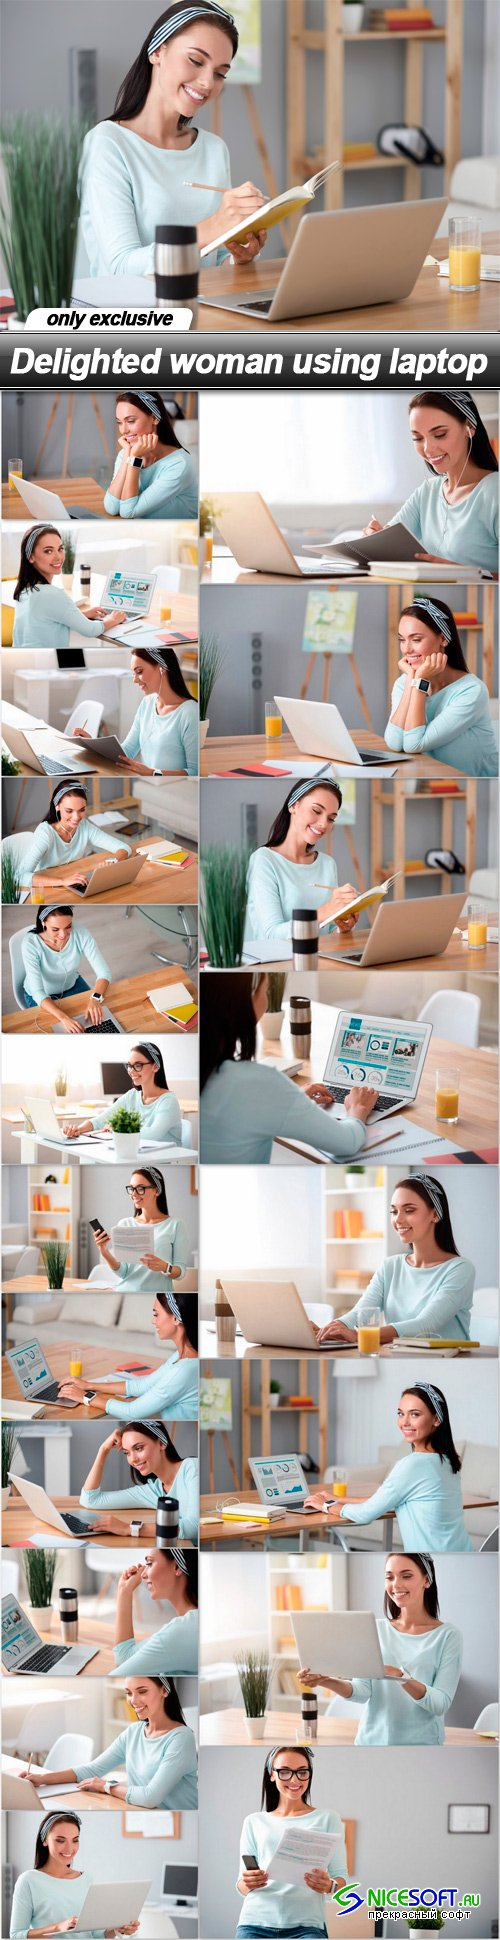 Delighted woman using laptop